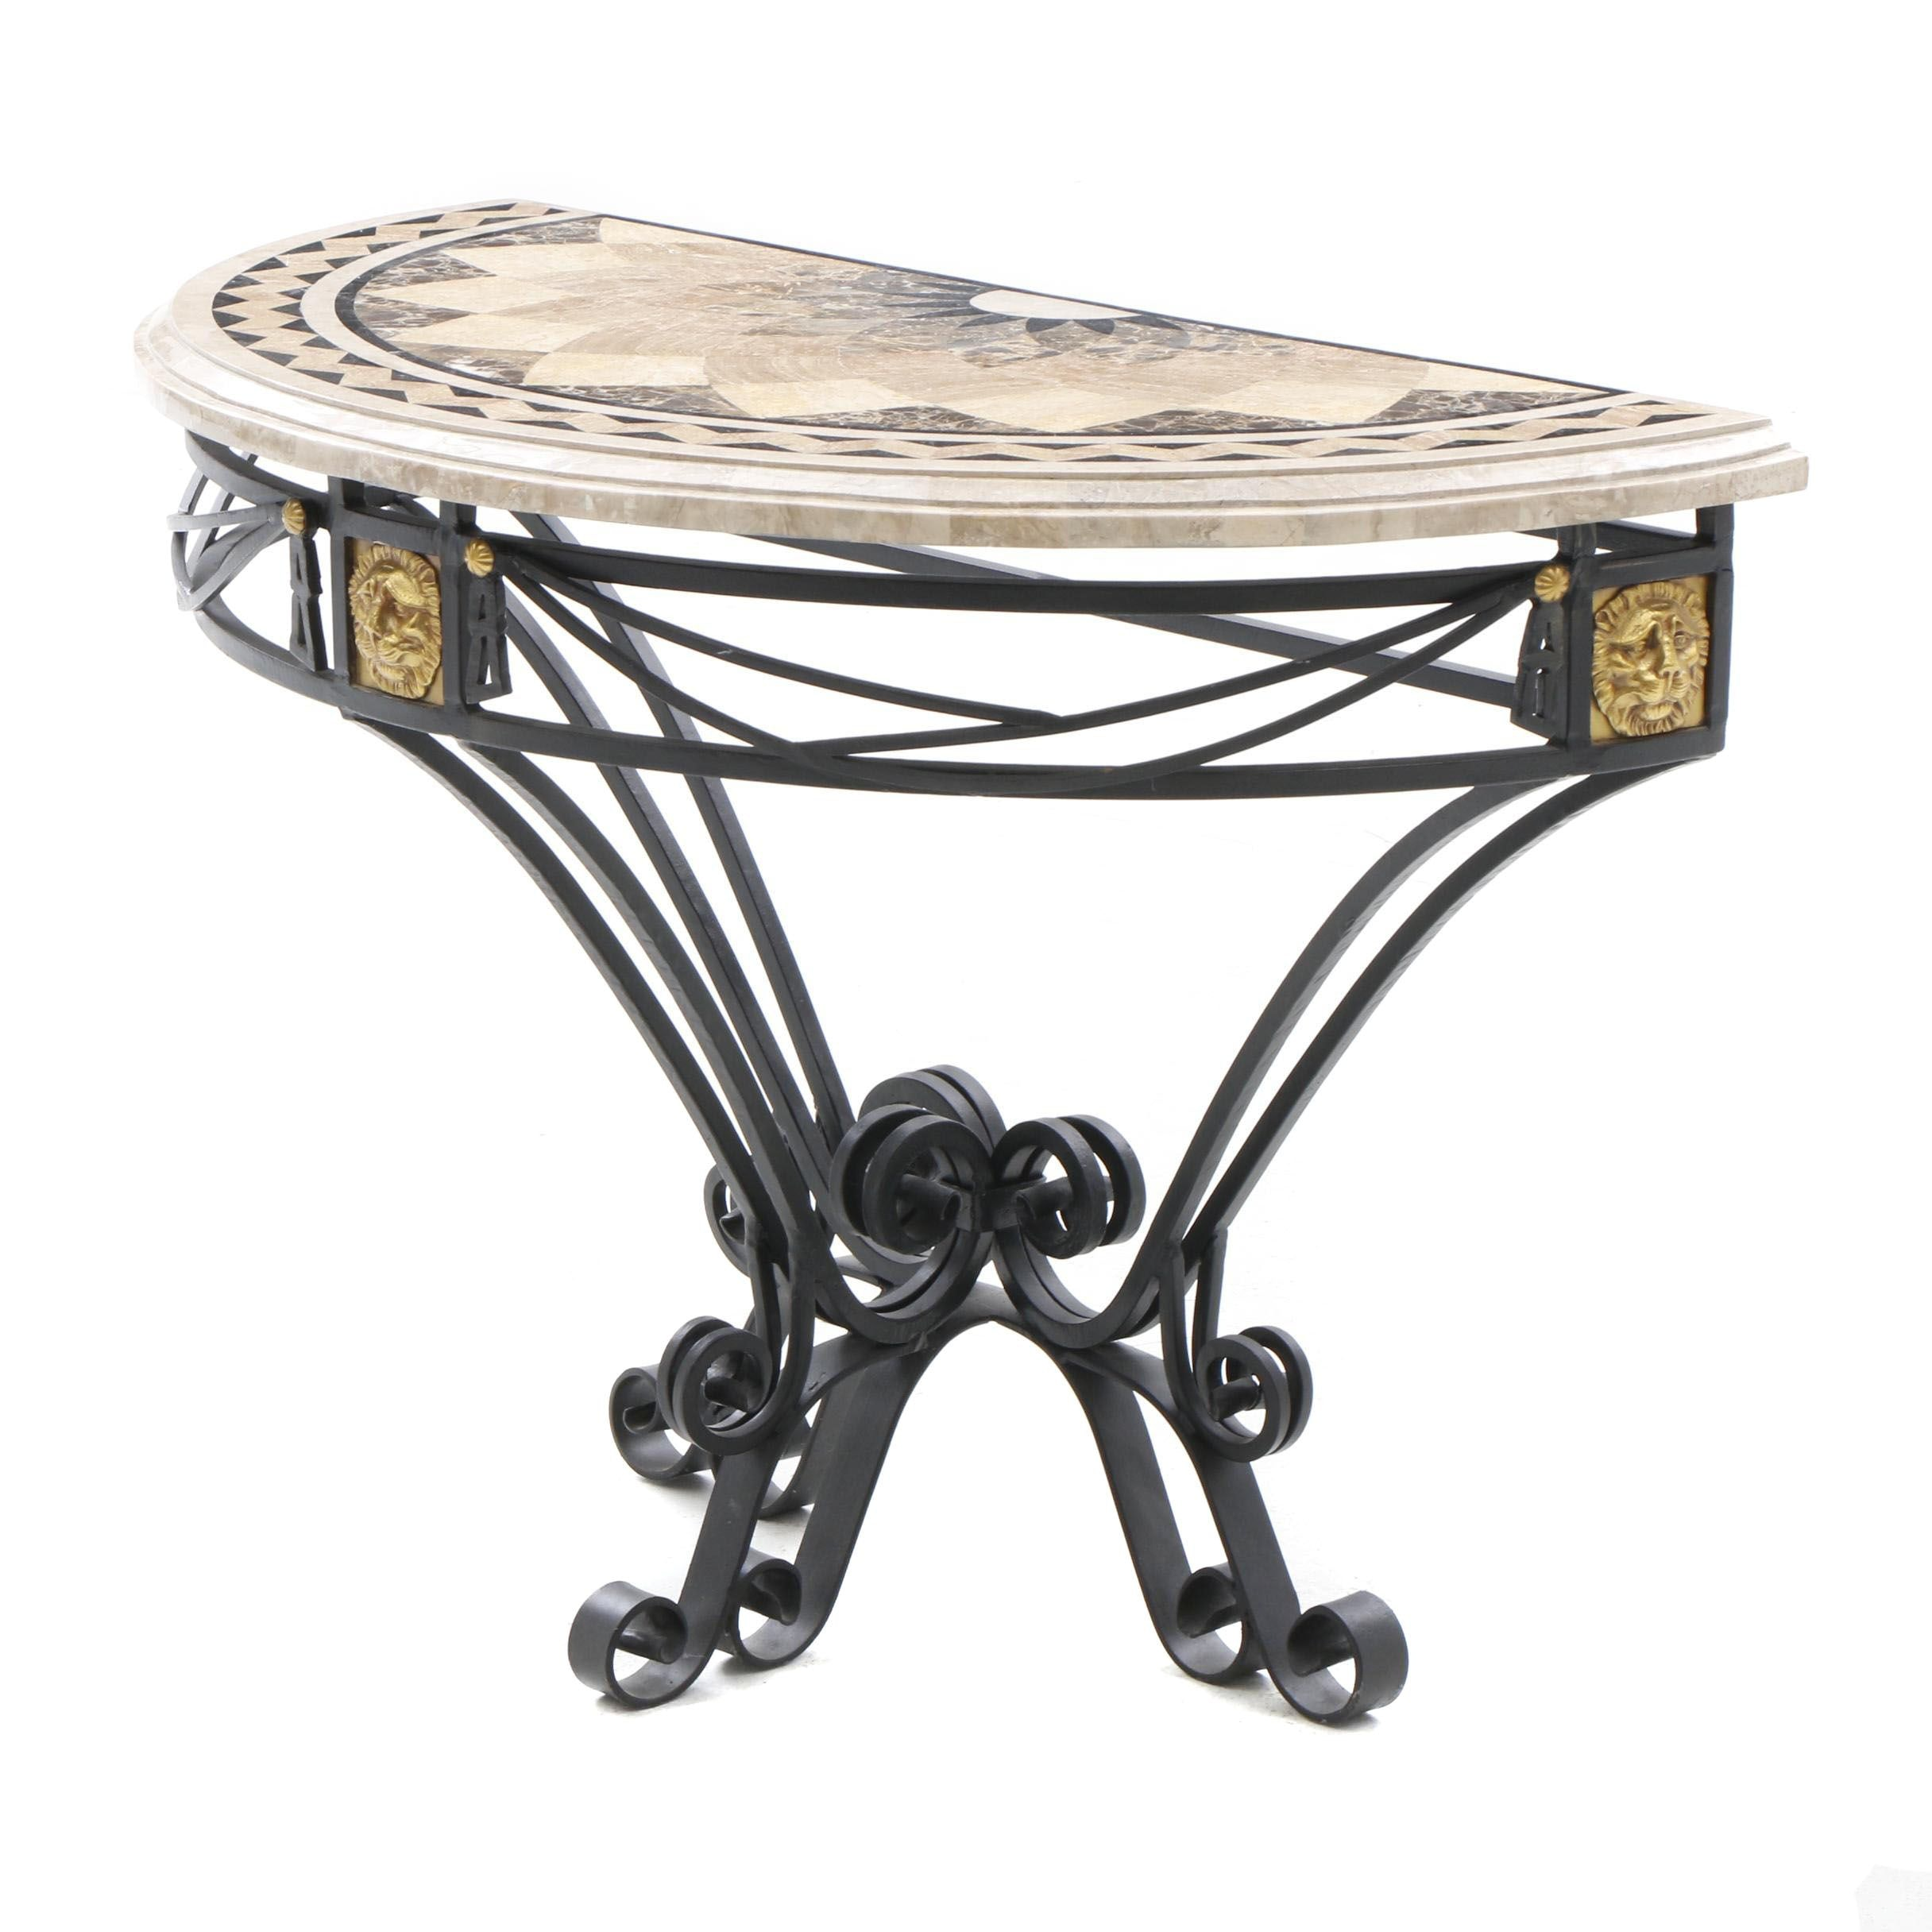 Maitland-Smith Marble Top Demilune Table